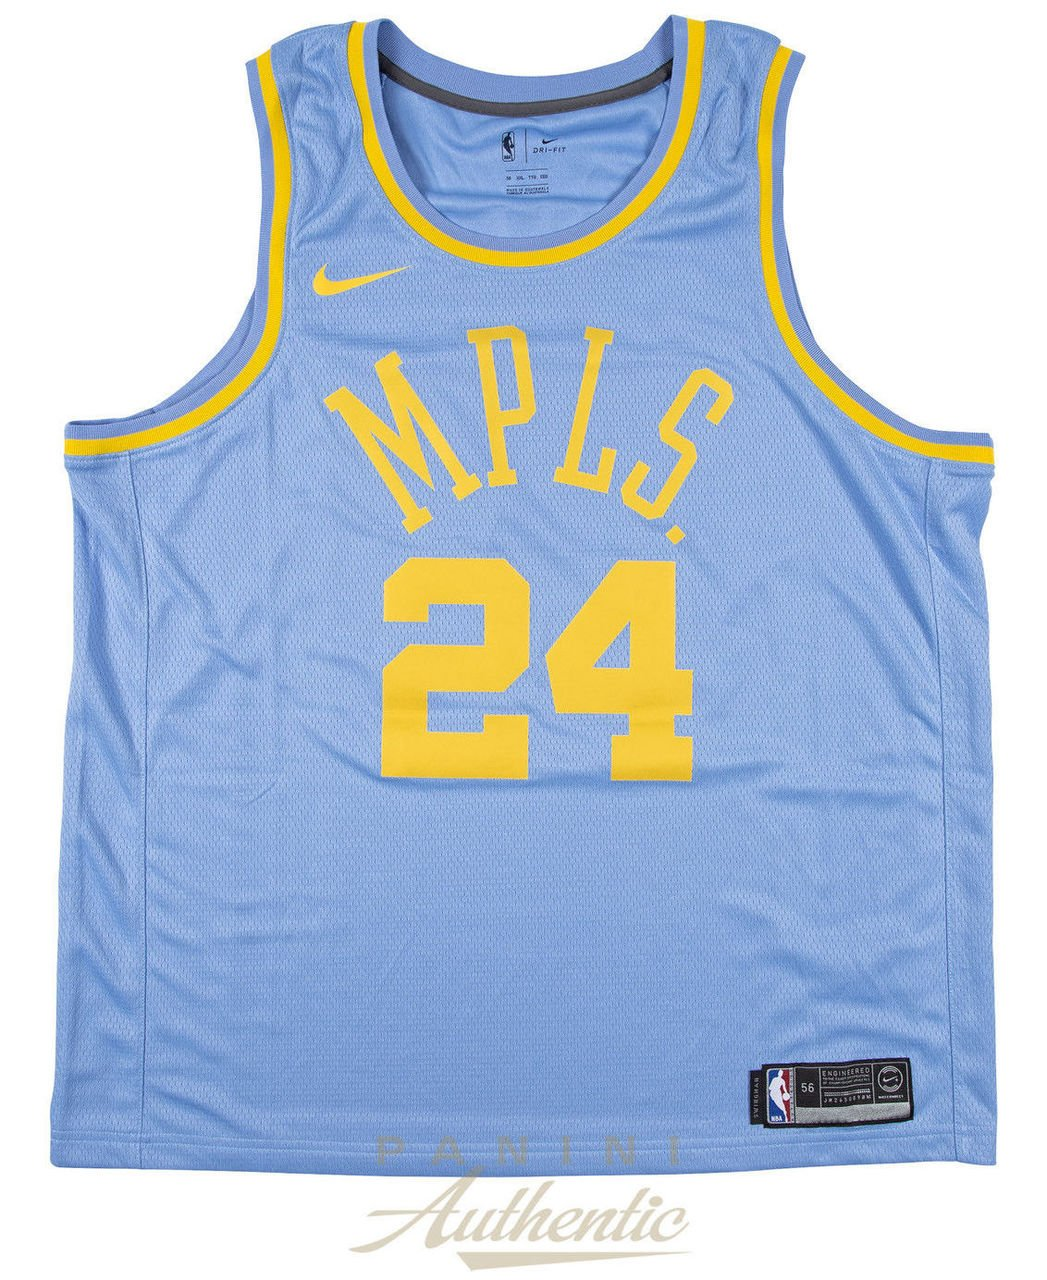 ce4af889dad3 Amazon.com  KOBE BRYANT Autographed Minneapolis Lakers Throwback Jersey  PANINI  Sports Collectibles